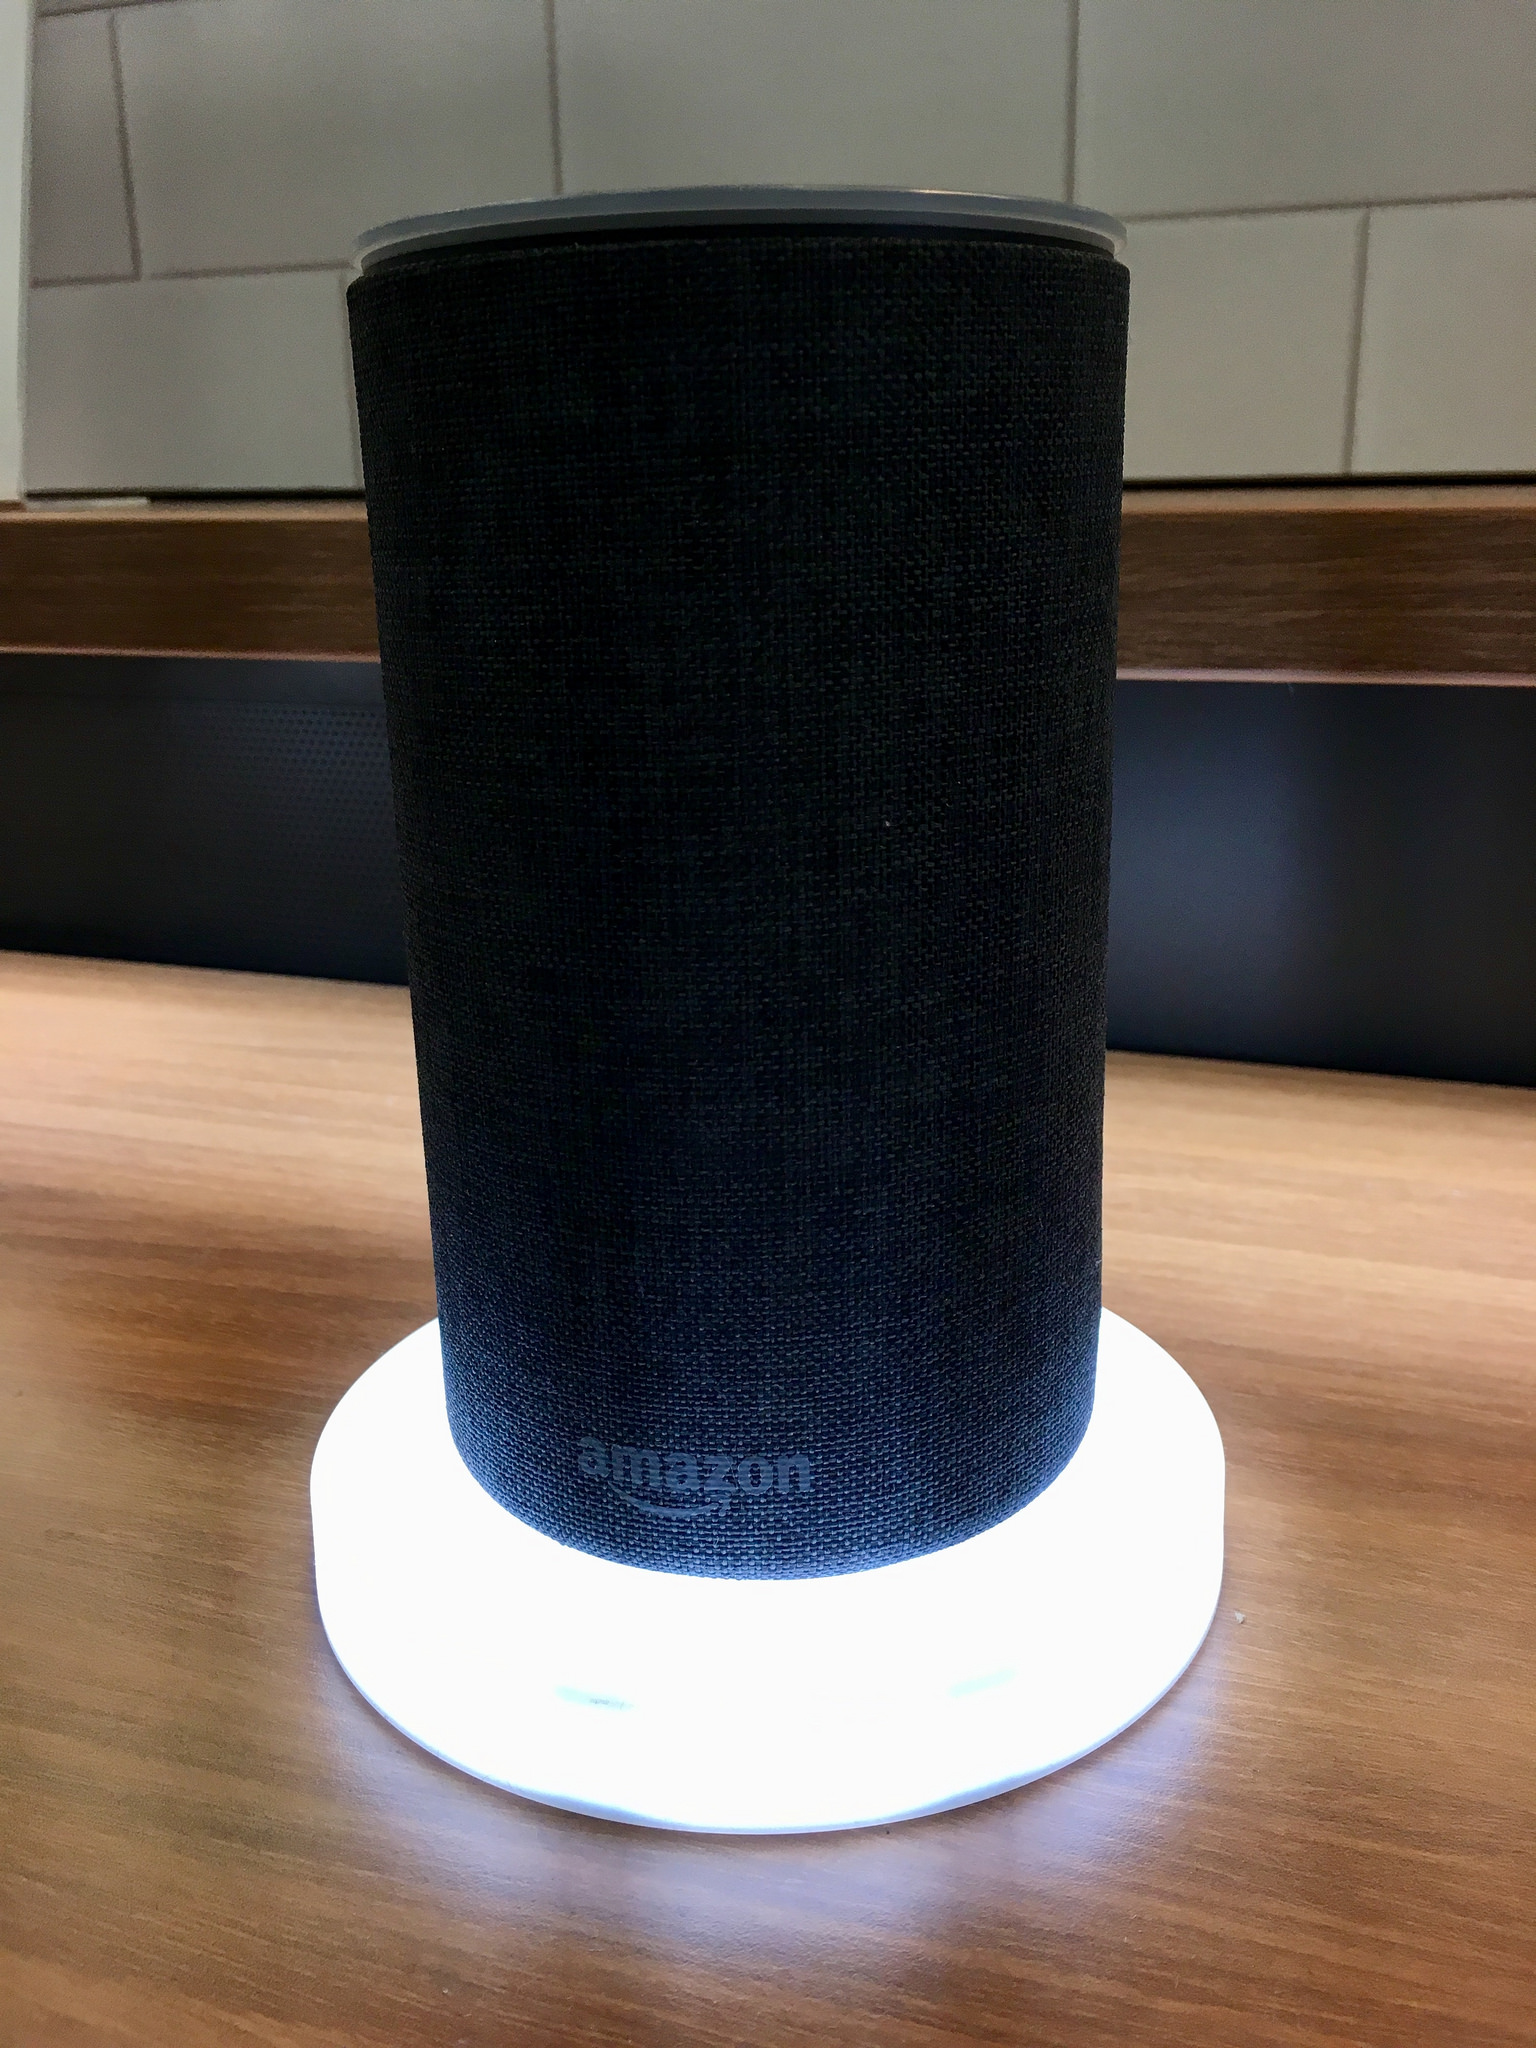 You're Not Insane, Alexa Was Creepily Laughing At You